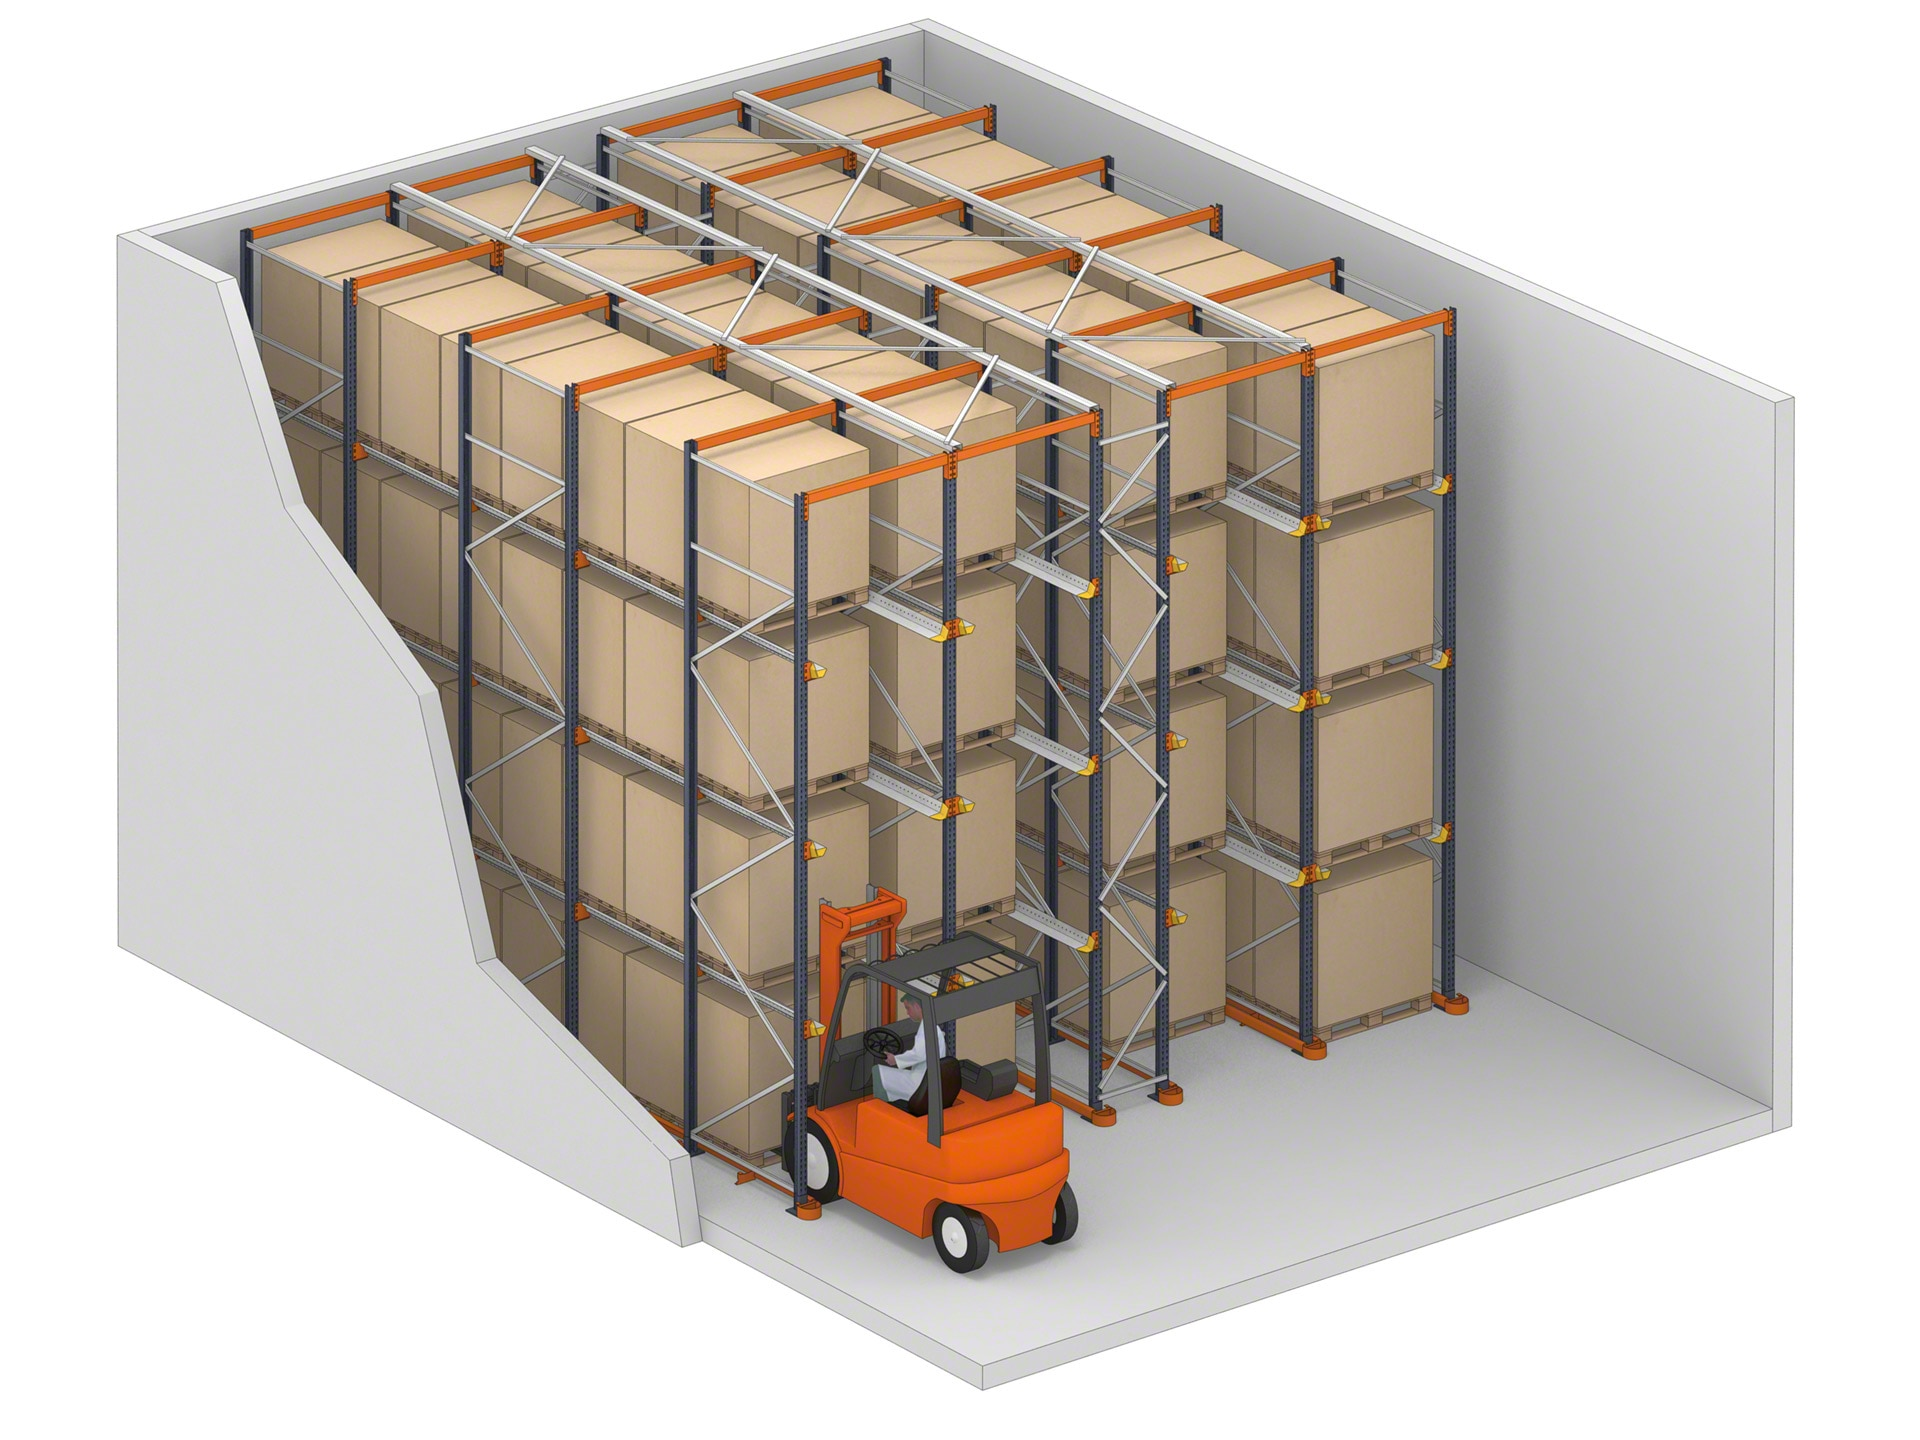 The drive-in system is a racking system in which forklifts can access the goods through its storage channels